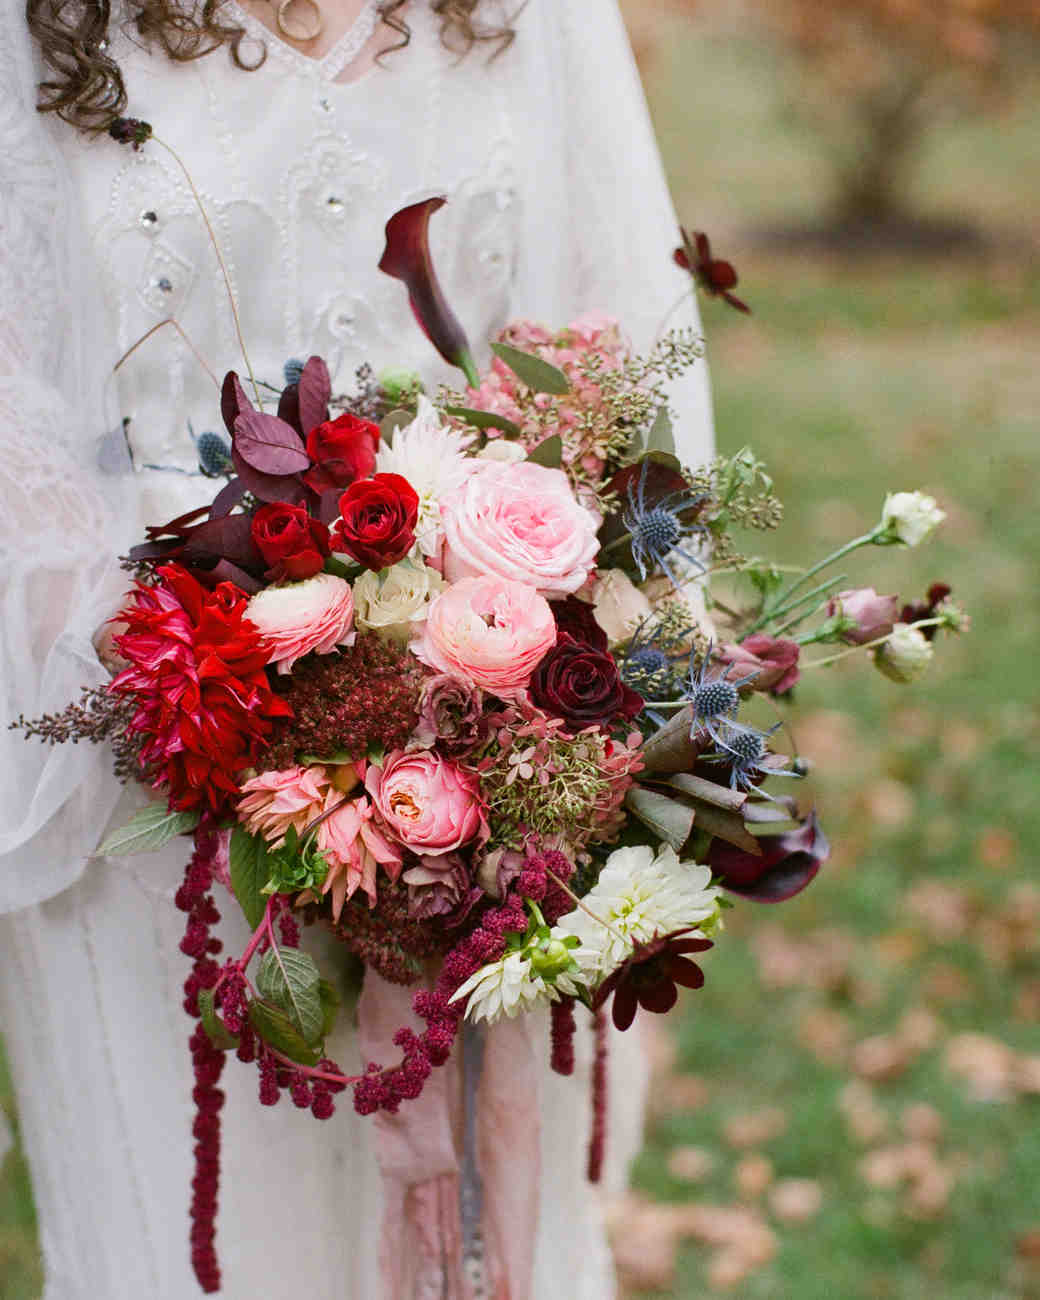 Bridal Bouquet with Deep Reds and Muted Pinks and Blues